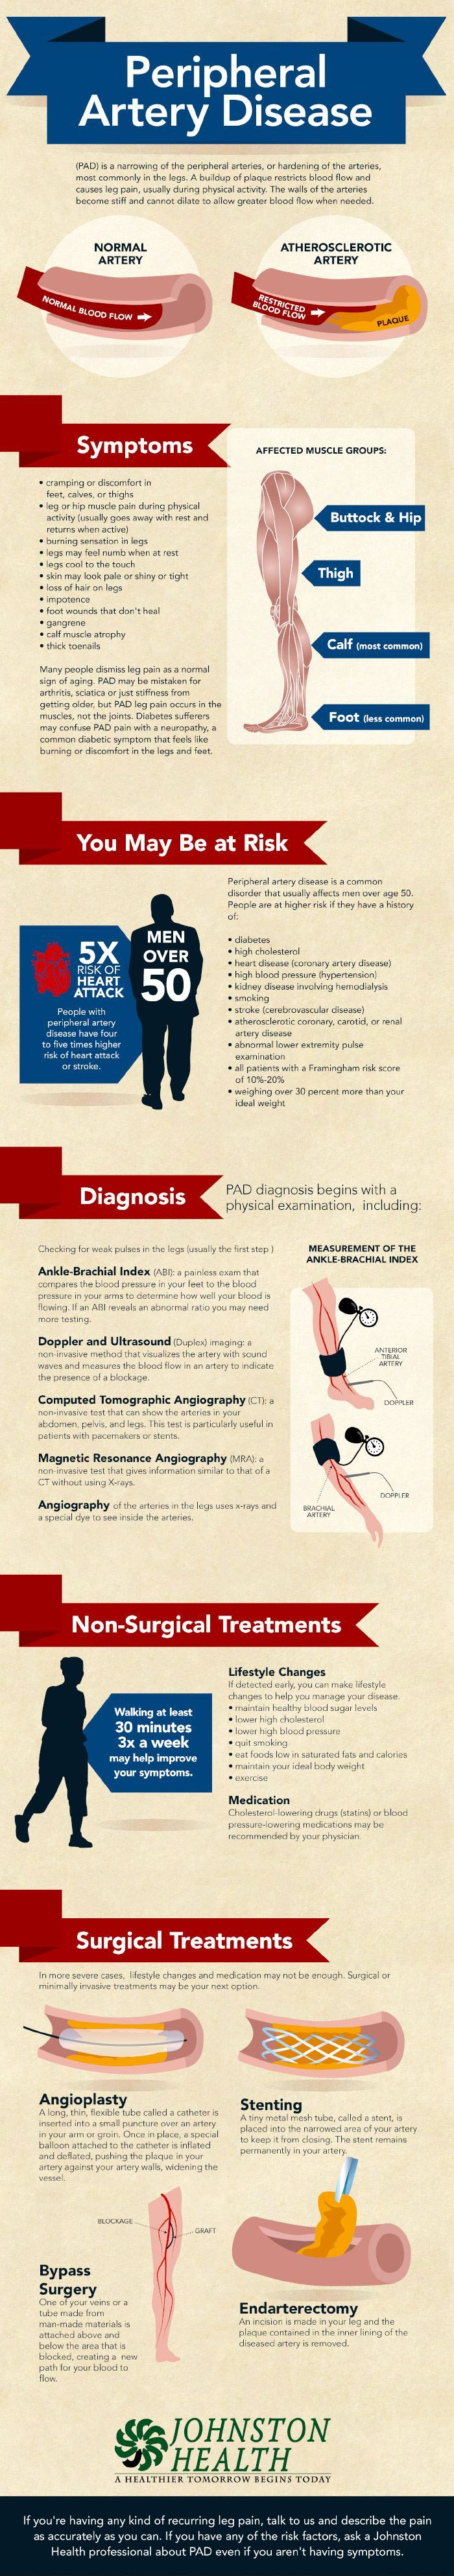 Learn More About Peripheral Artery Disease Symptoms that could SAVE YOUR LIFE! Review this infographic at http://www.hflopportunity.com/affiliate/idevaffiliate.php?id=806&url=139